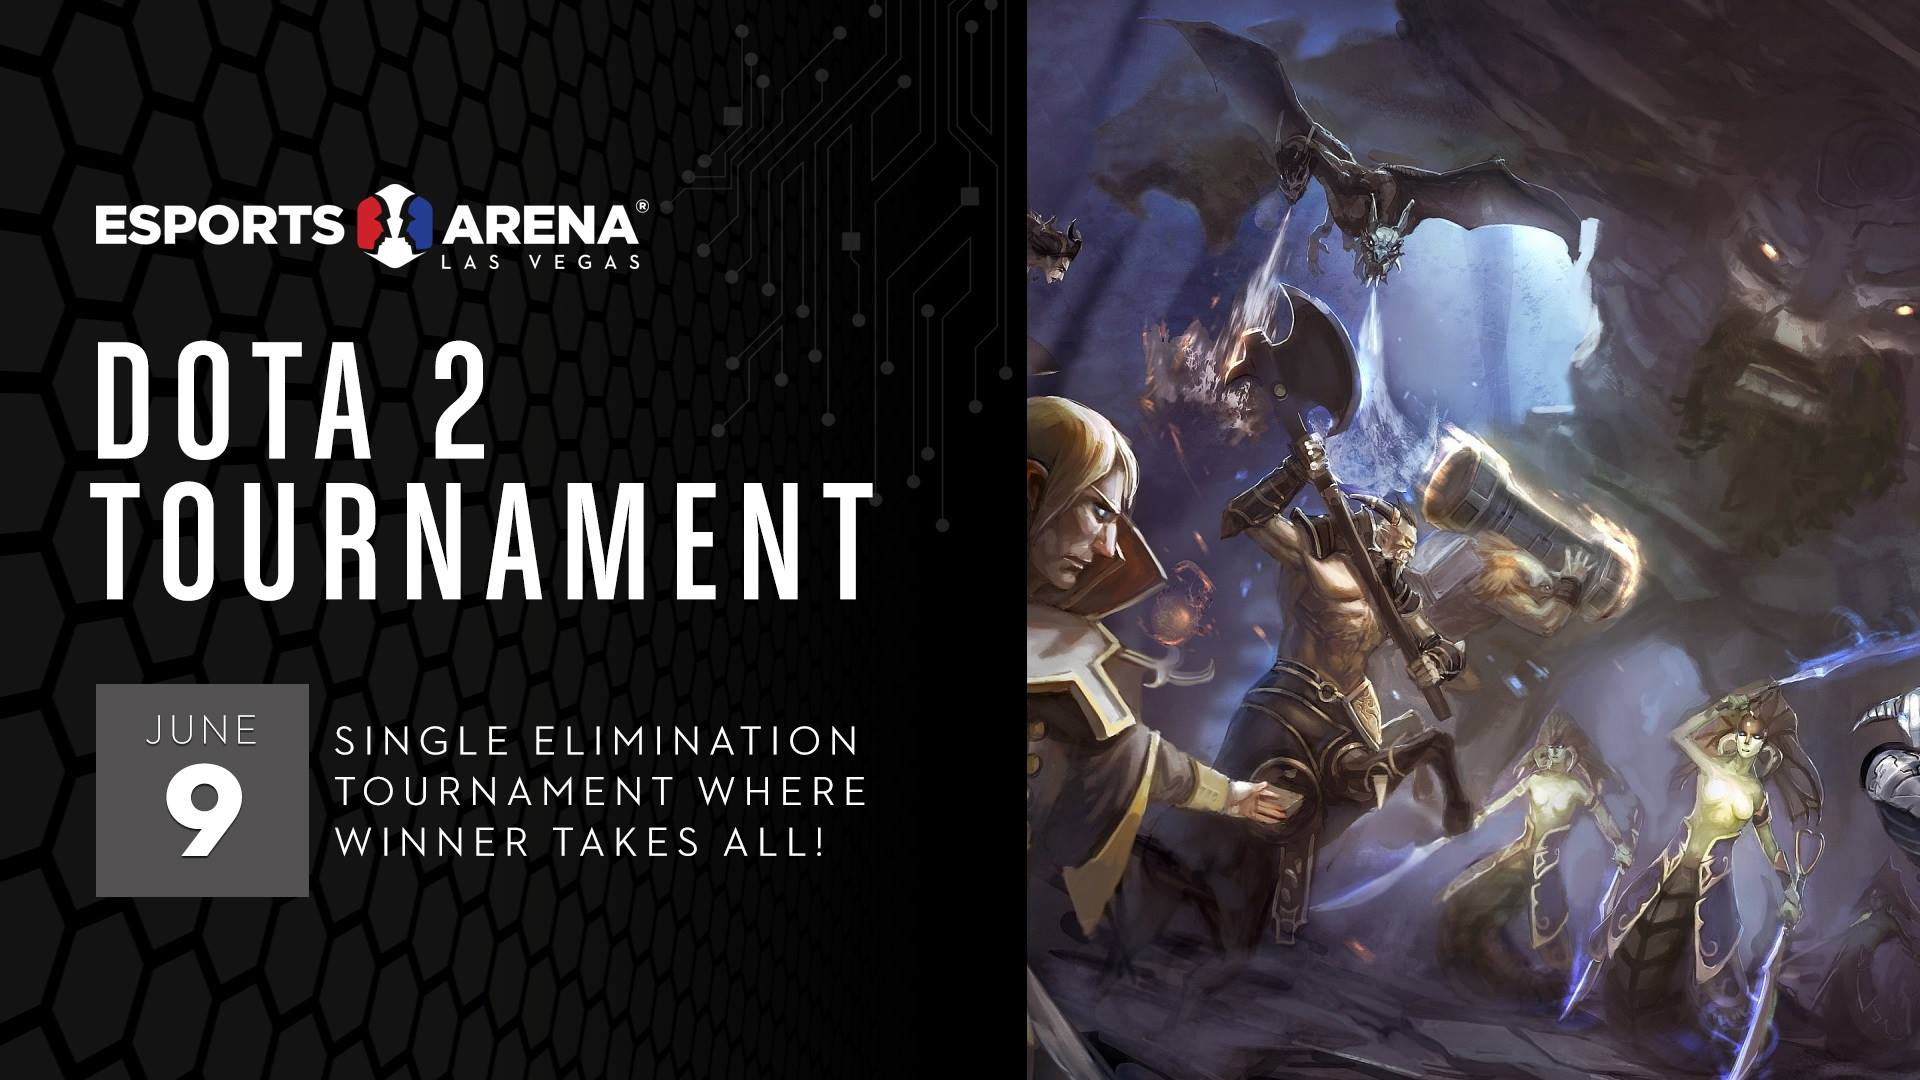 Dota 2 Tournament Esports In Las Vegas